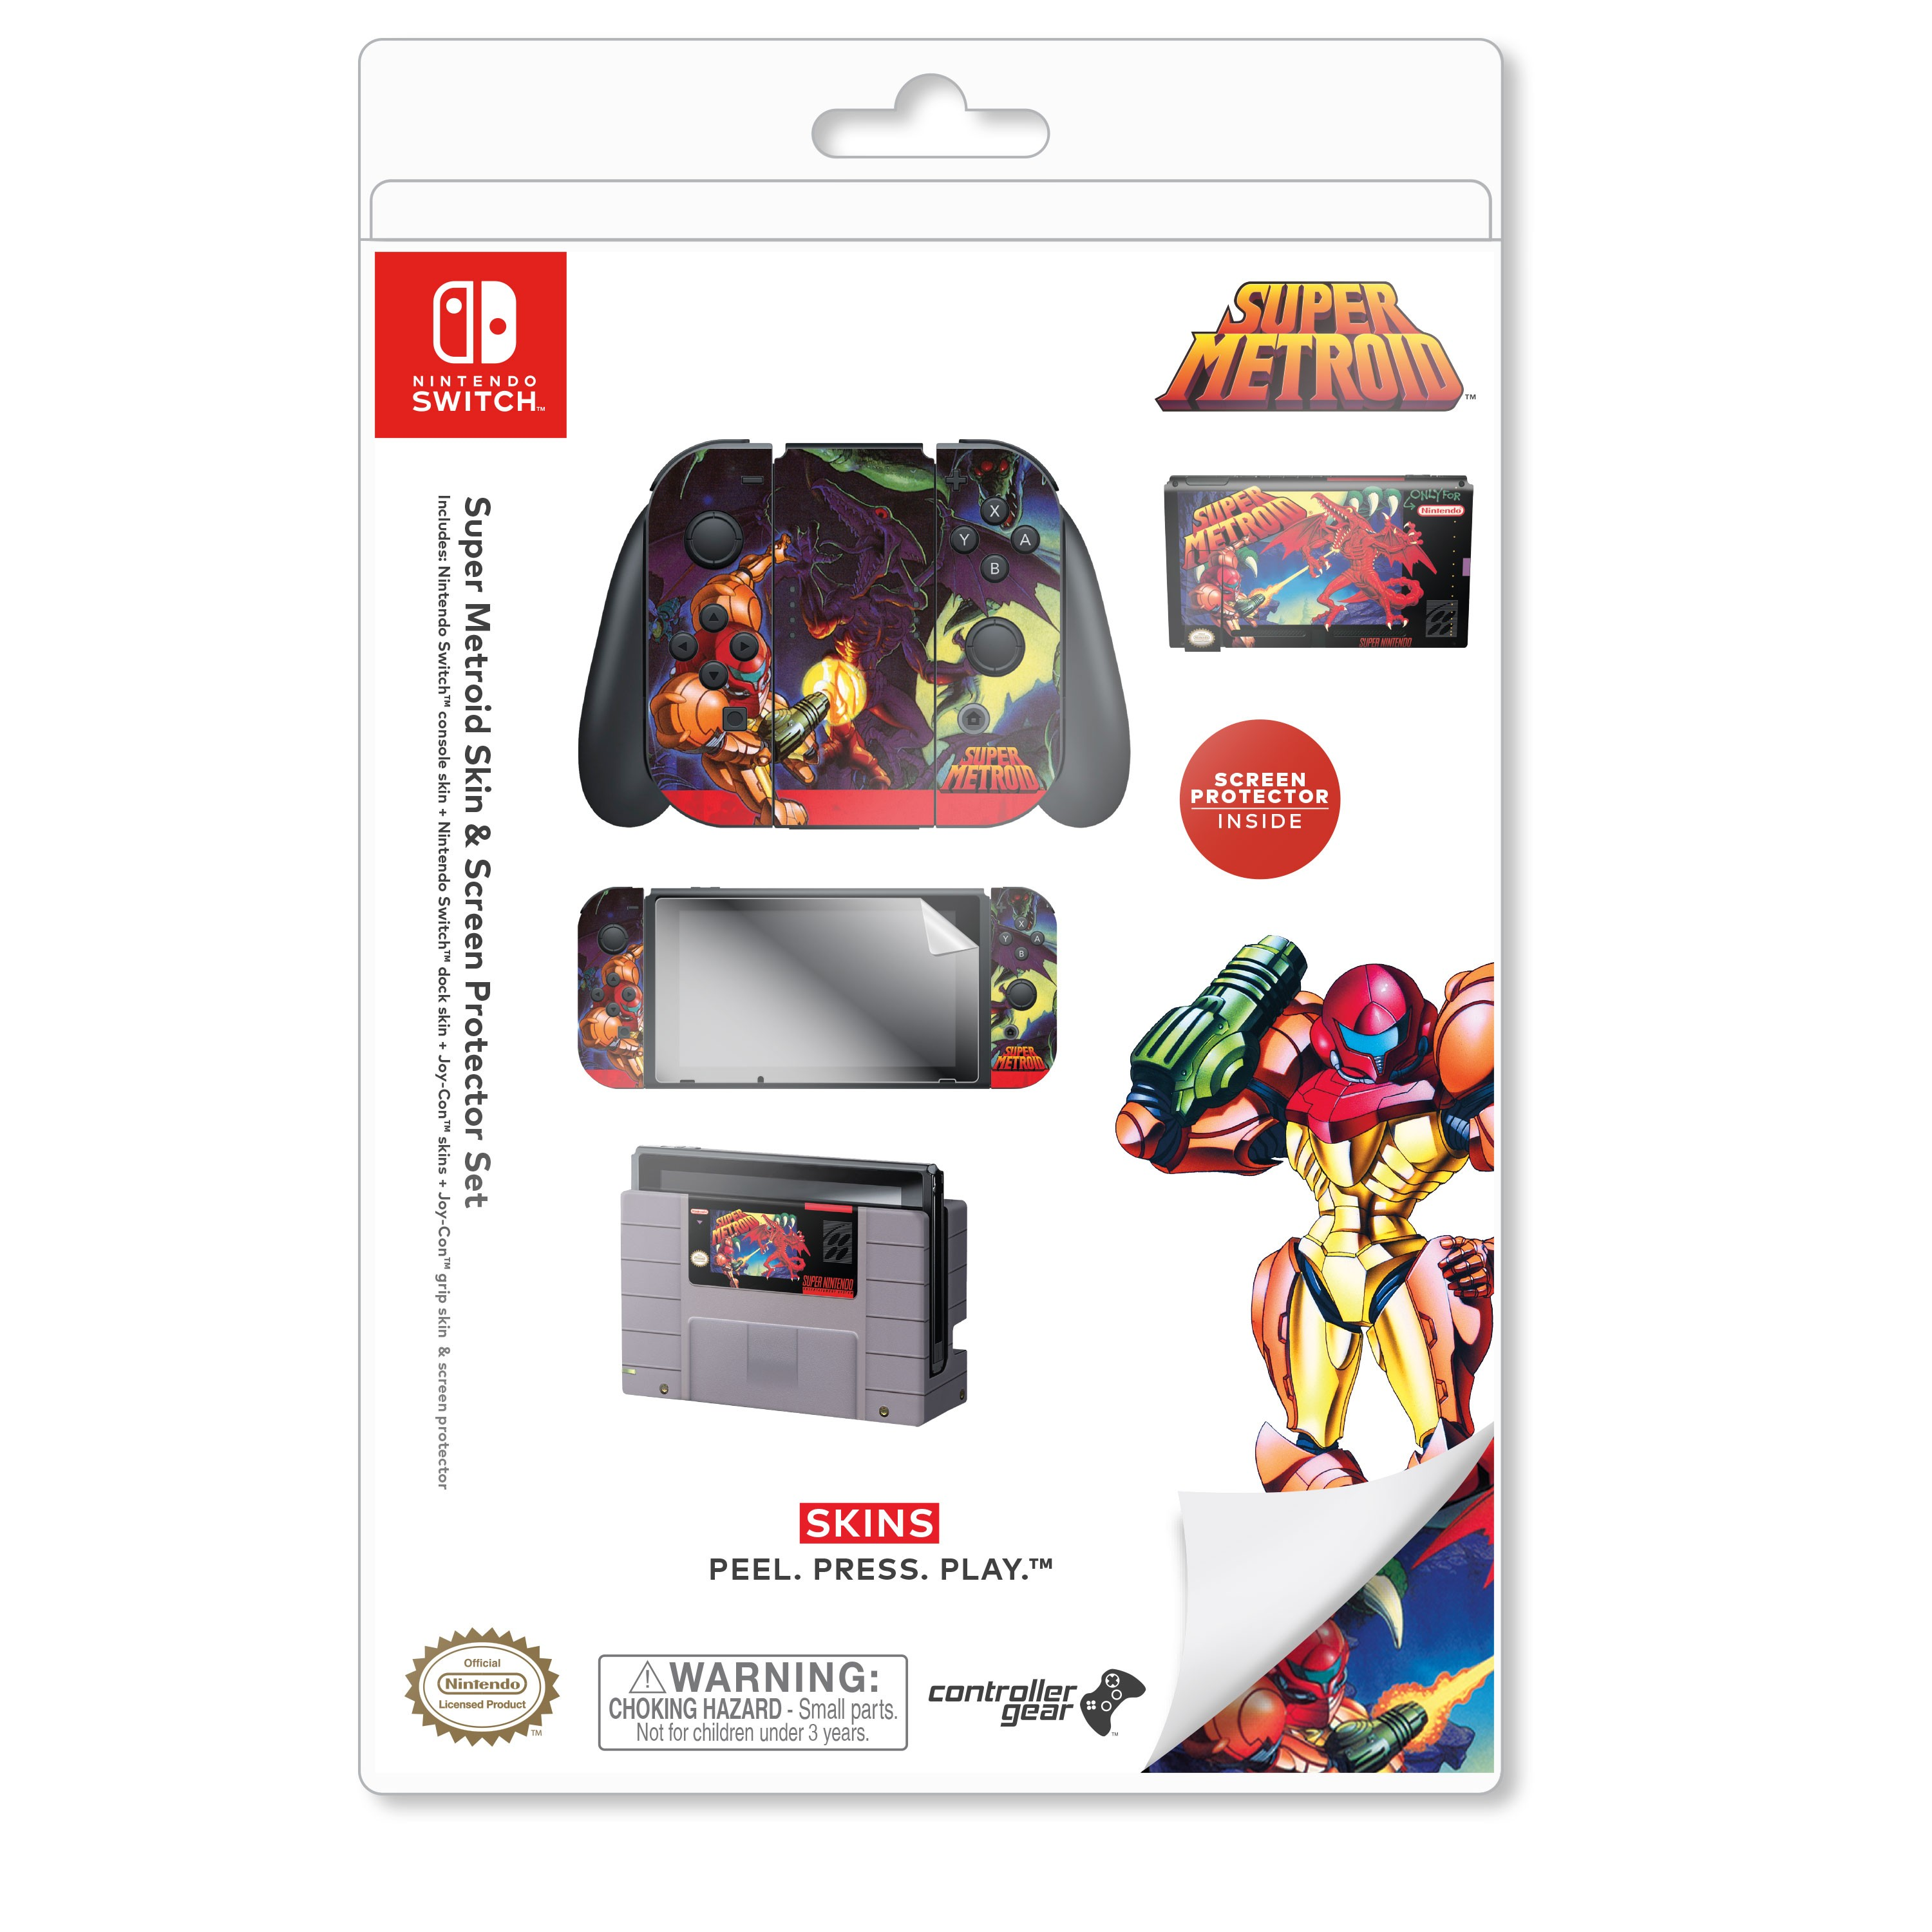 "Super Metroid™ ""Super Metroid"" Nintendo Switch™ Console skin + Dock Skin + Joy-Con™ skin + Joy-Con™ Grip Skin + Screen Protector Bundle Assortment, Officially Licensed by Nintendo"